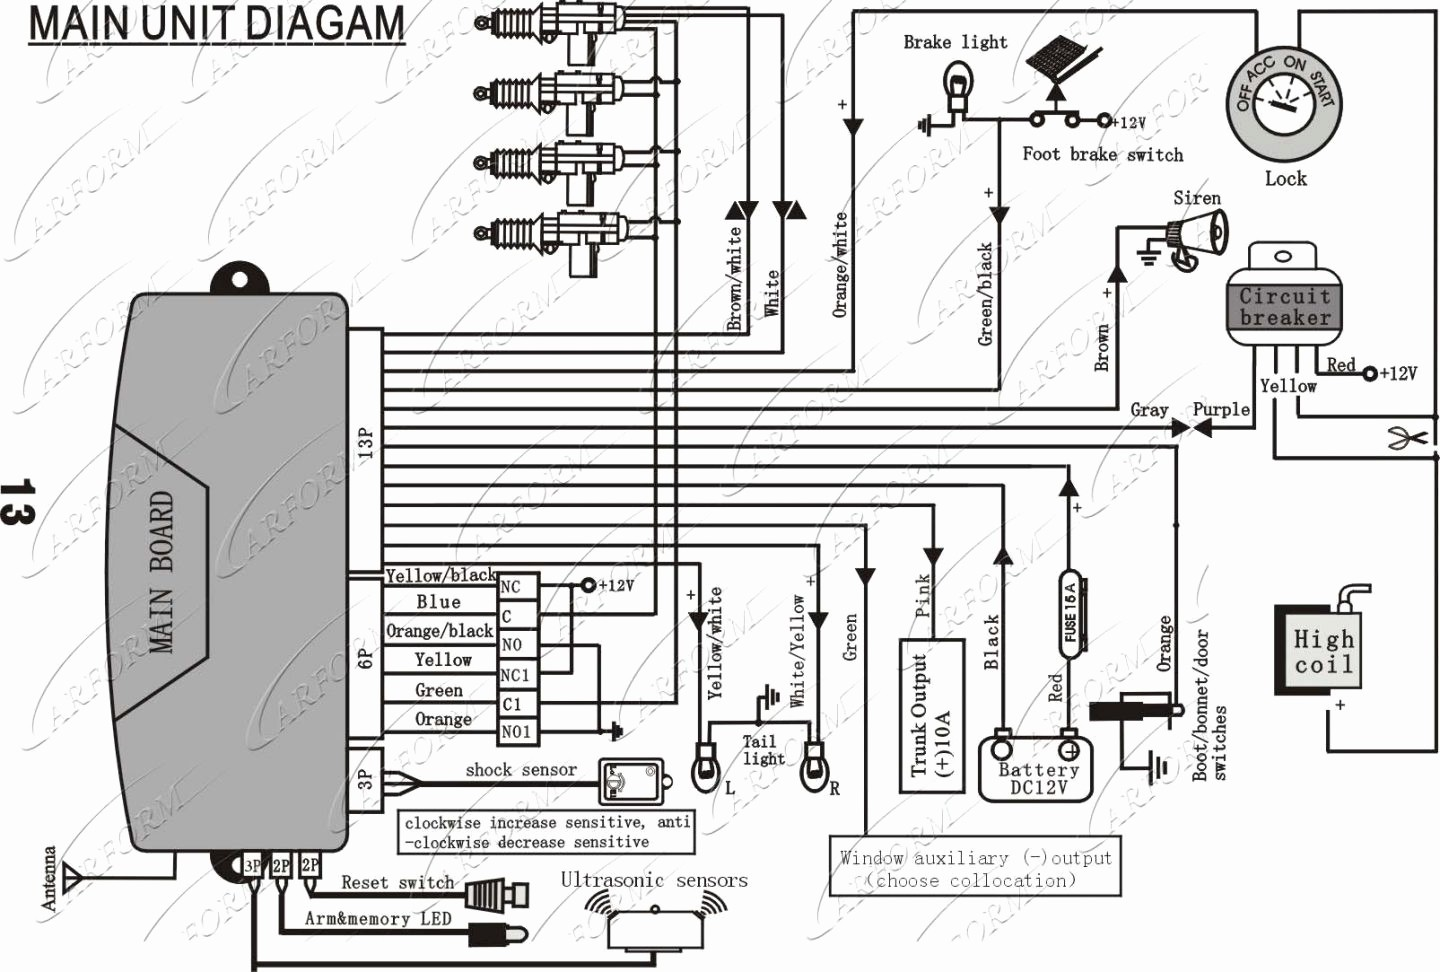 DIAGRAM] Viper 160xv Wiring Diagram FULL Version HD Quality Wiring Diagram  - WIKIDIAGRAMS.SIGGY2000.DEwikidiagrams.siggy2000.de